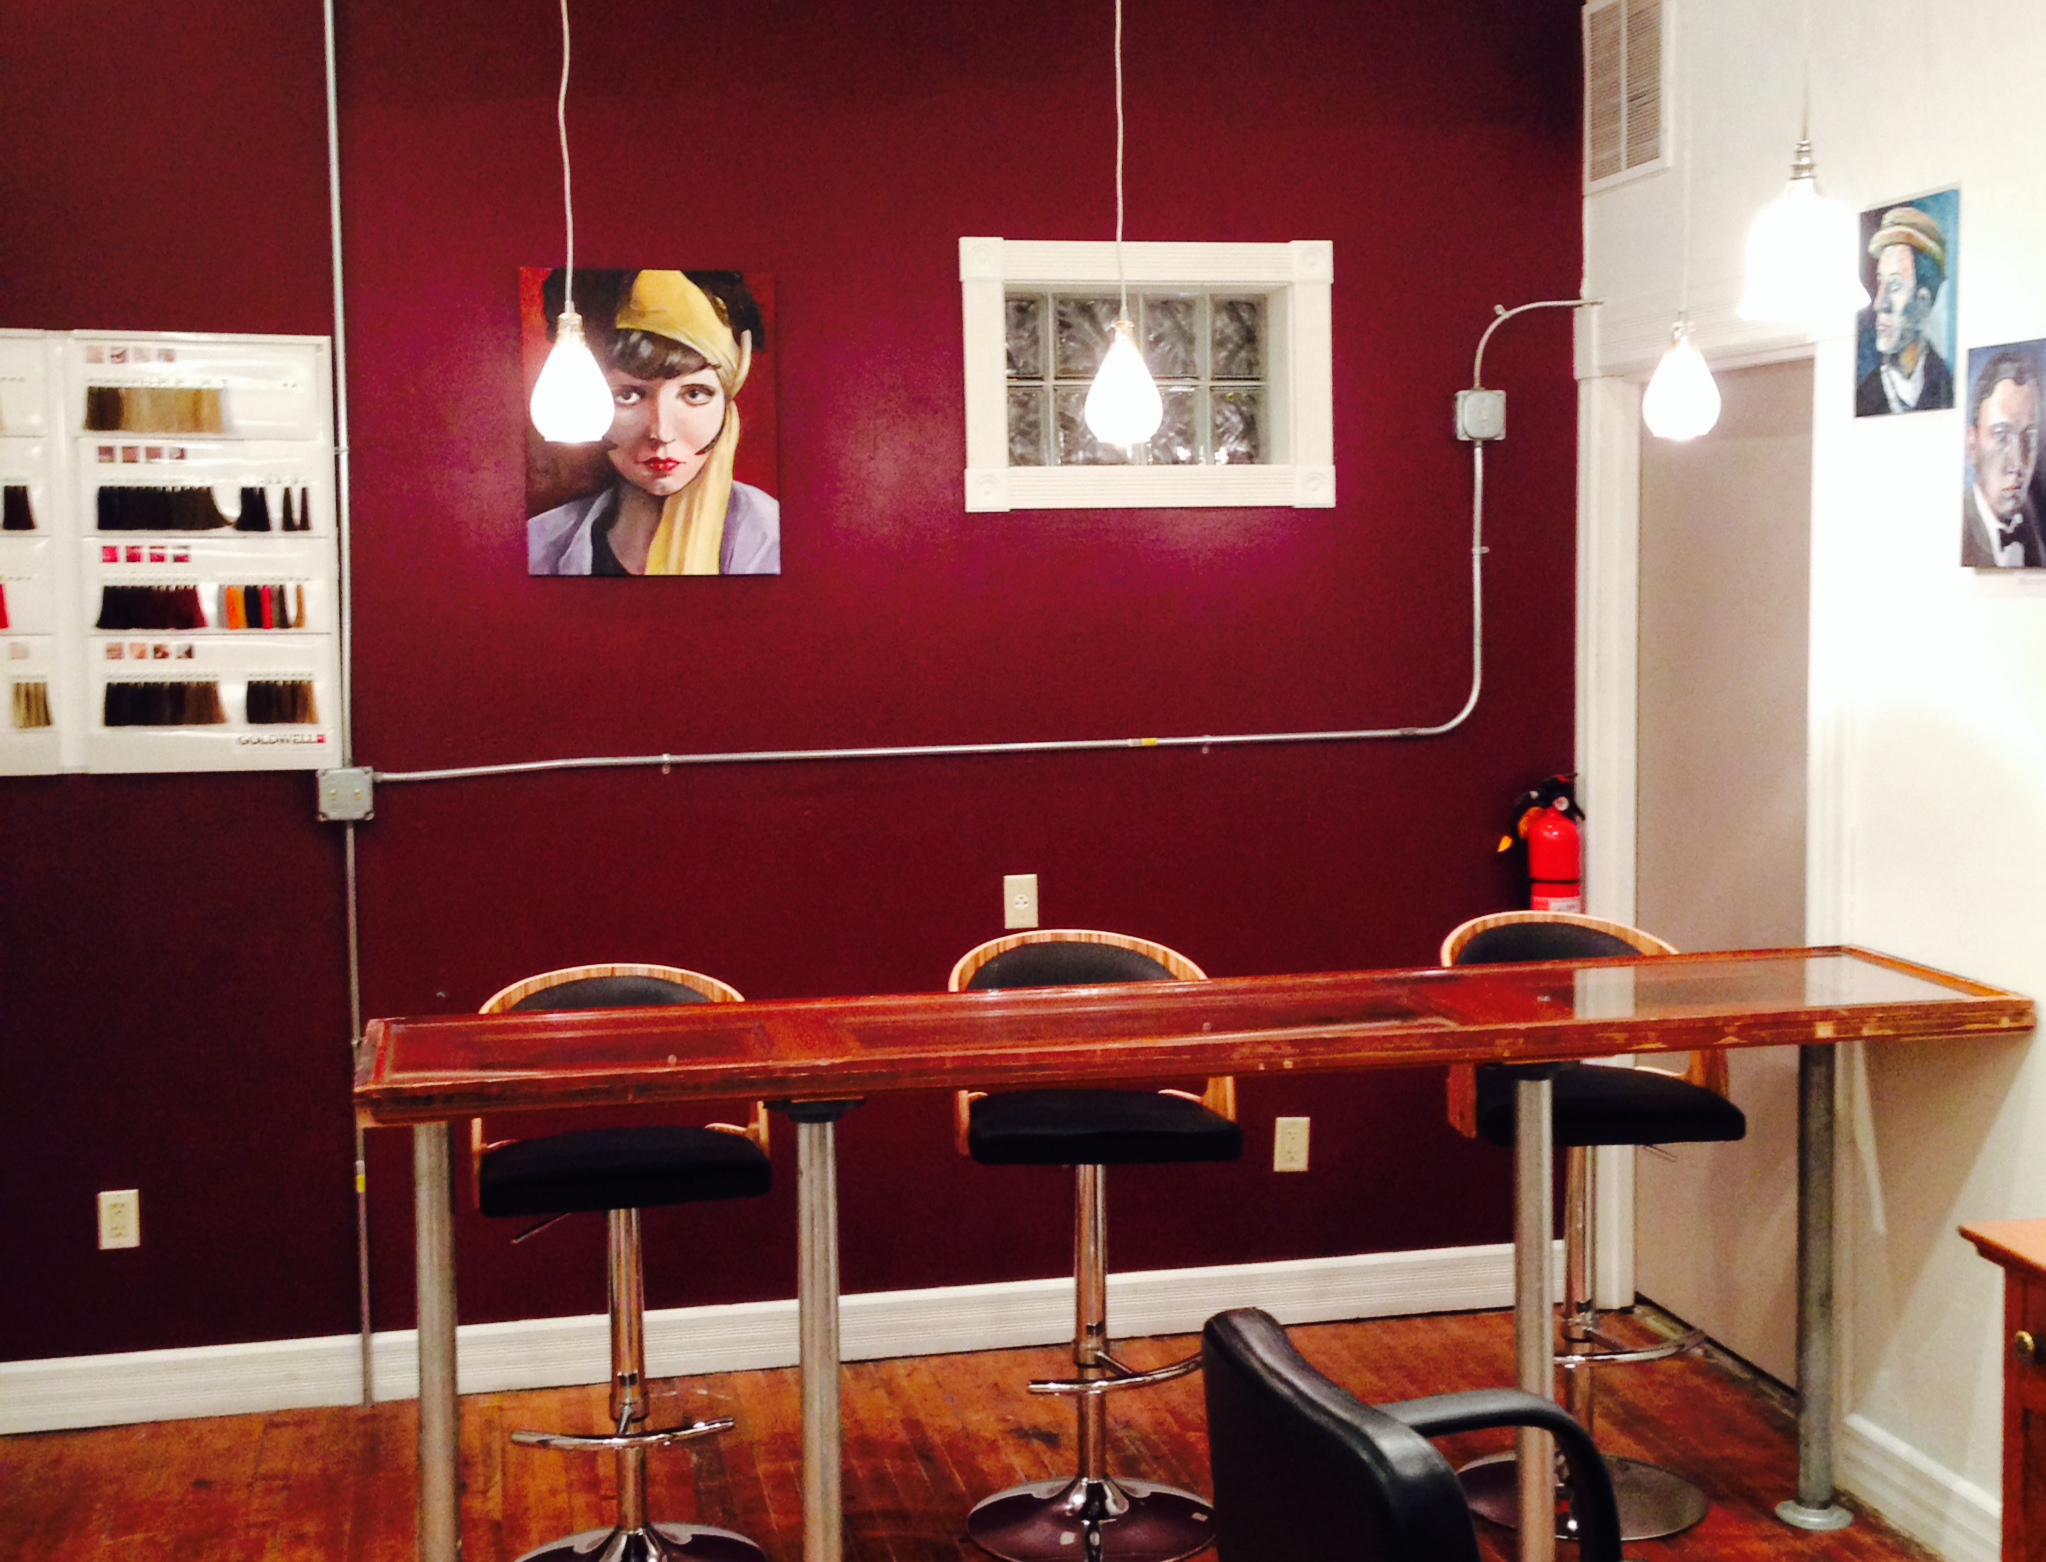 Salon updates tease 2222 s kinnickinnic ave bayview for A step ahead salon